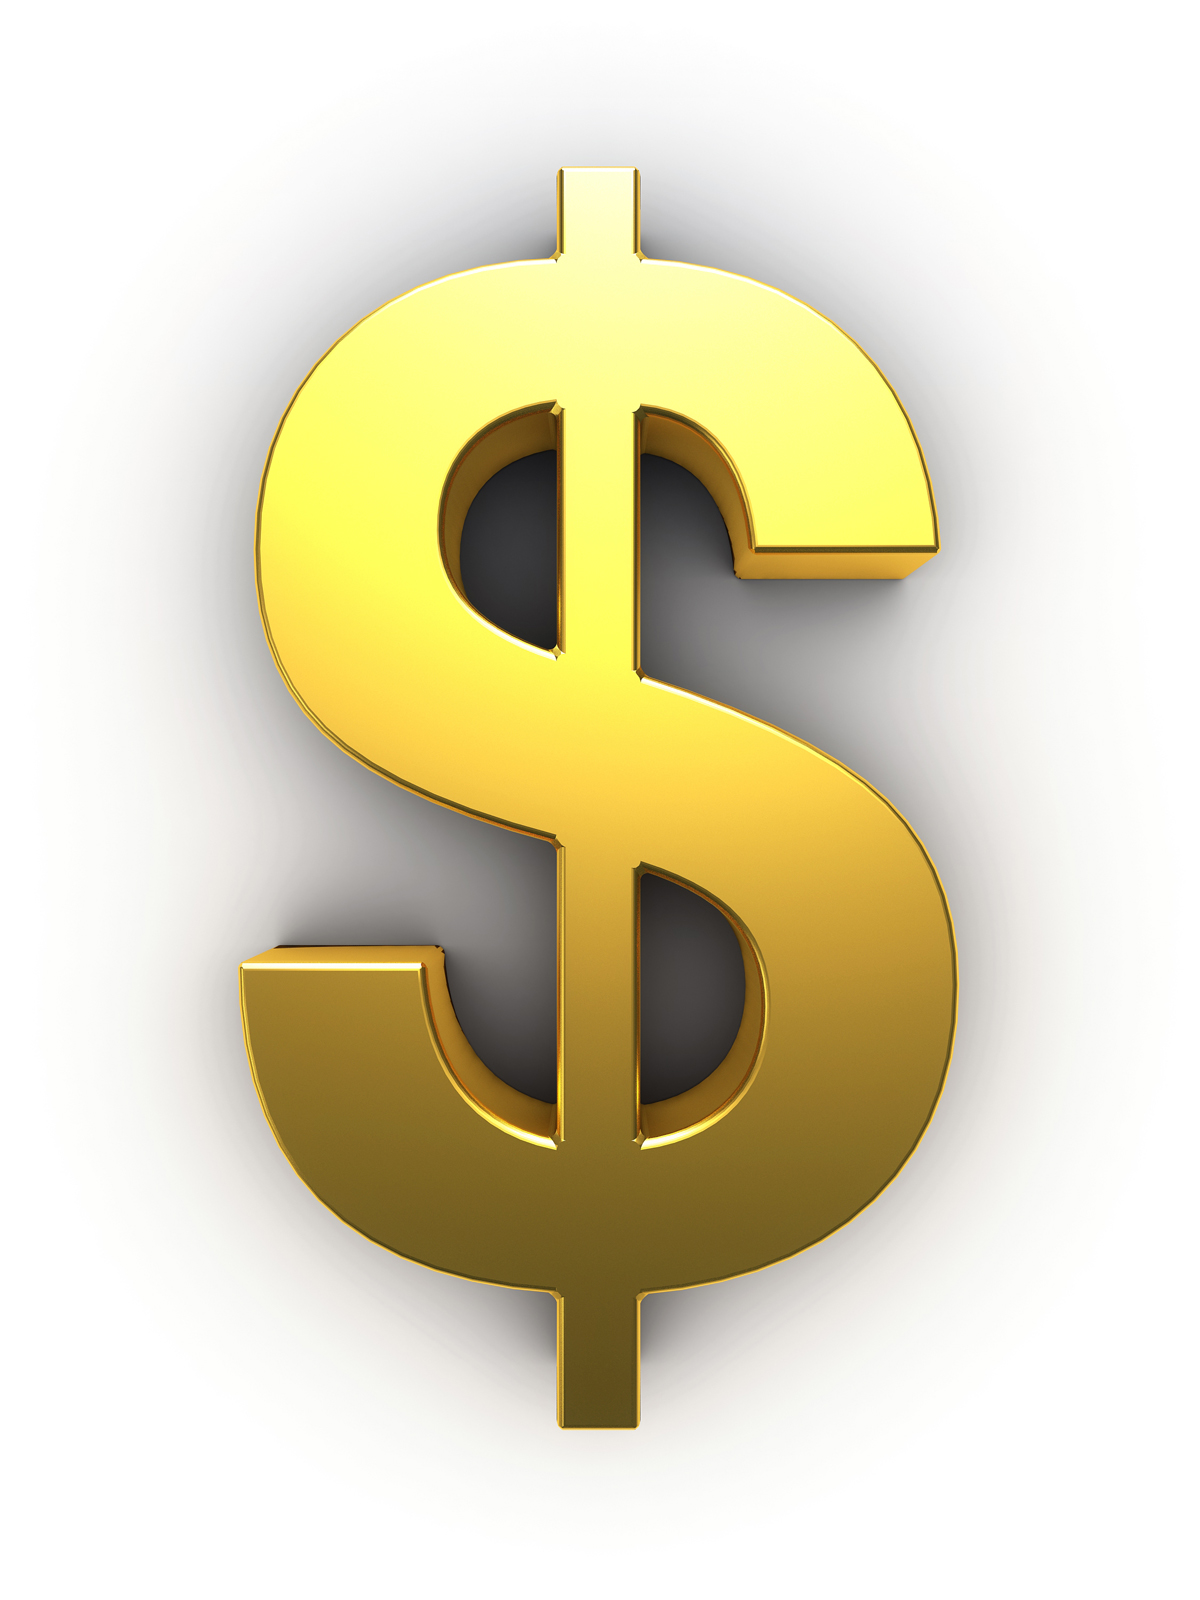 The Dollar Sign Is An Abbreviation For Pesos The Spanish Dollar Also